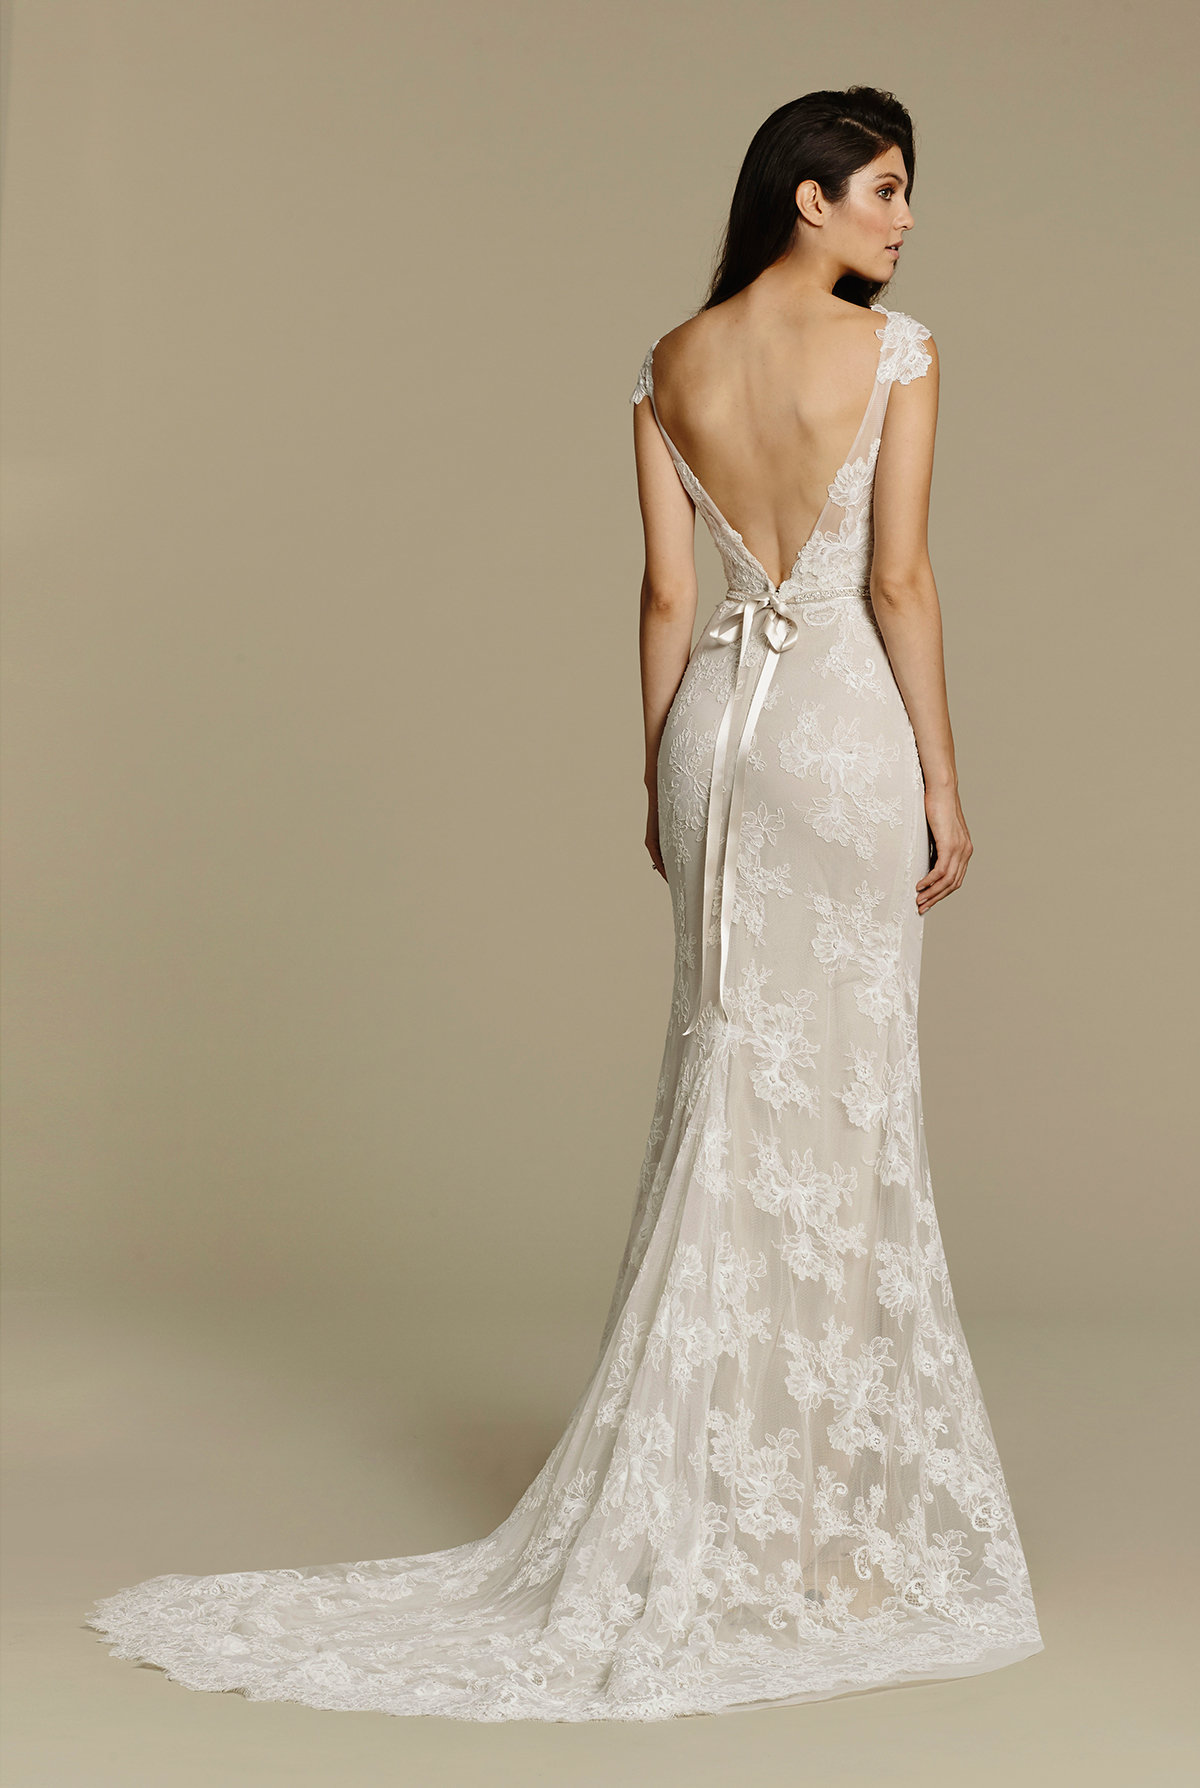 Bridal Gowns and Wedding Dresses by JLM Couture - Style 2607